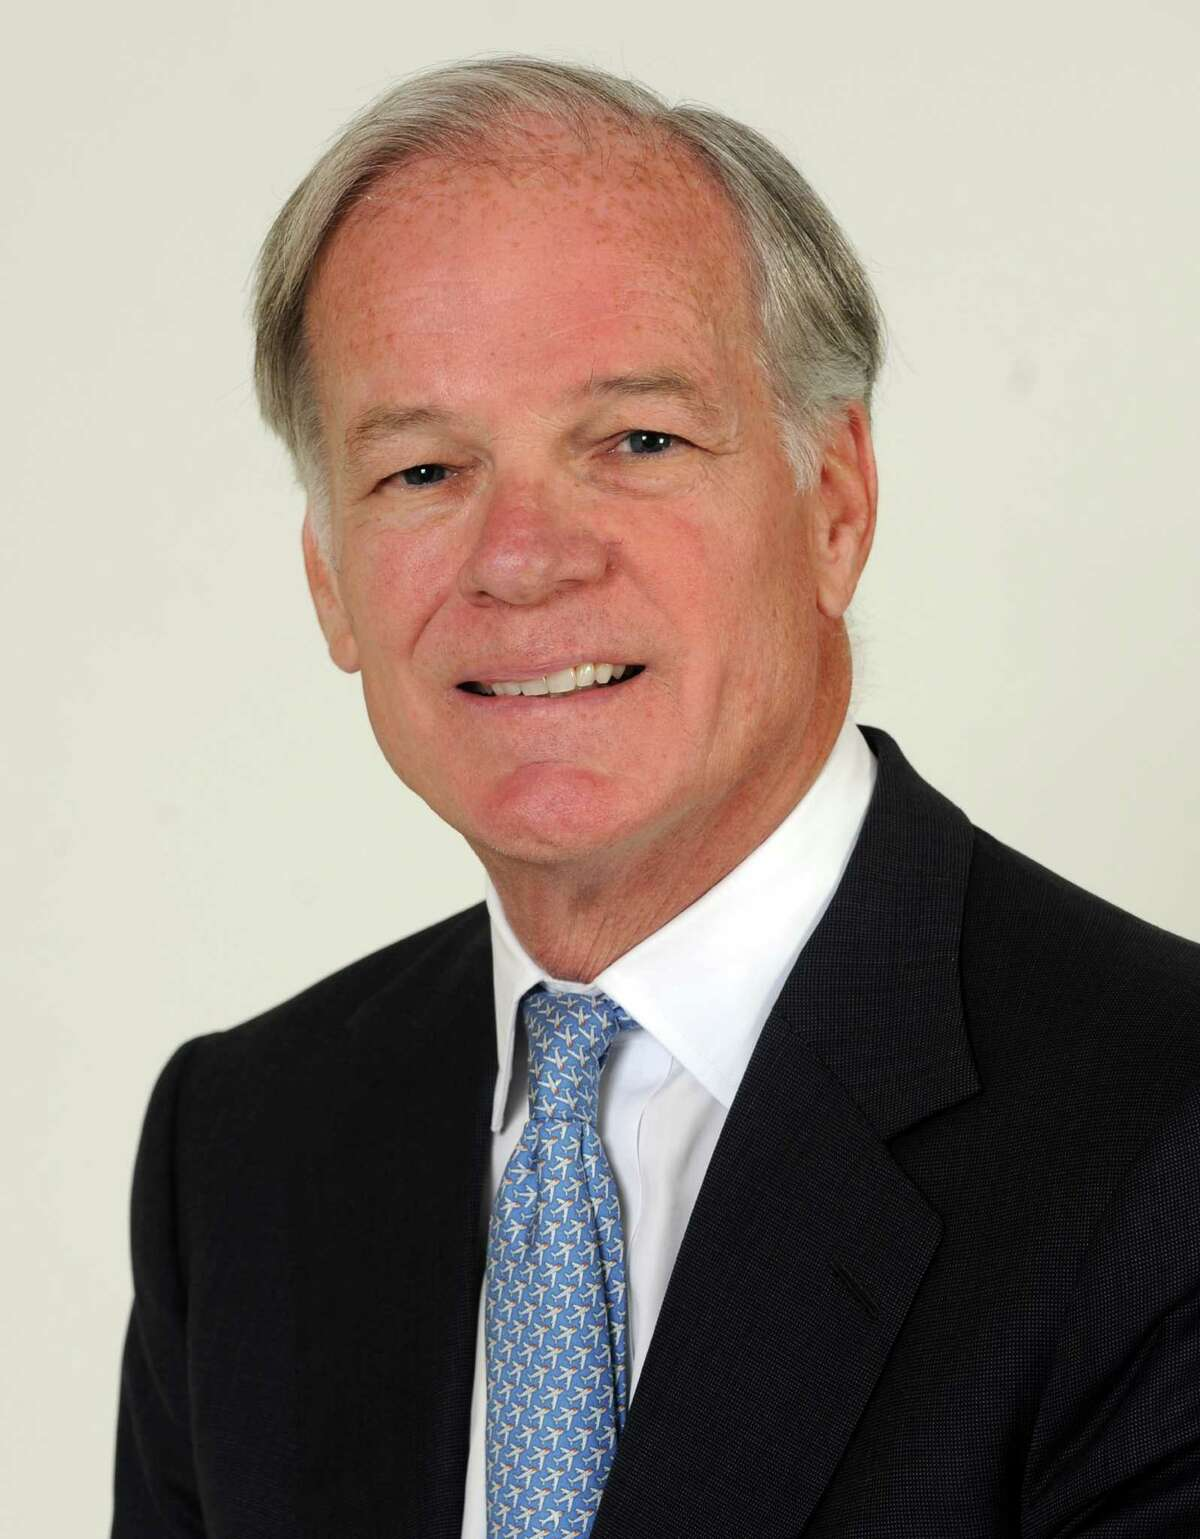 Tom Foley, Republican candidate for governor of Connecticut